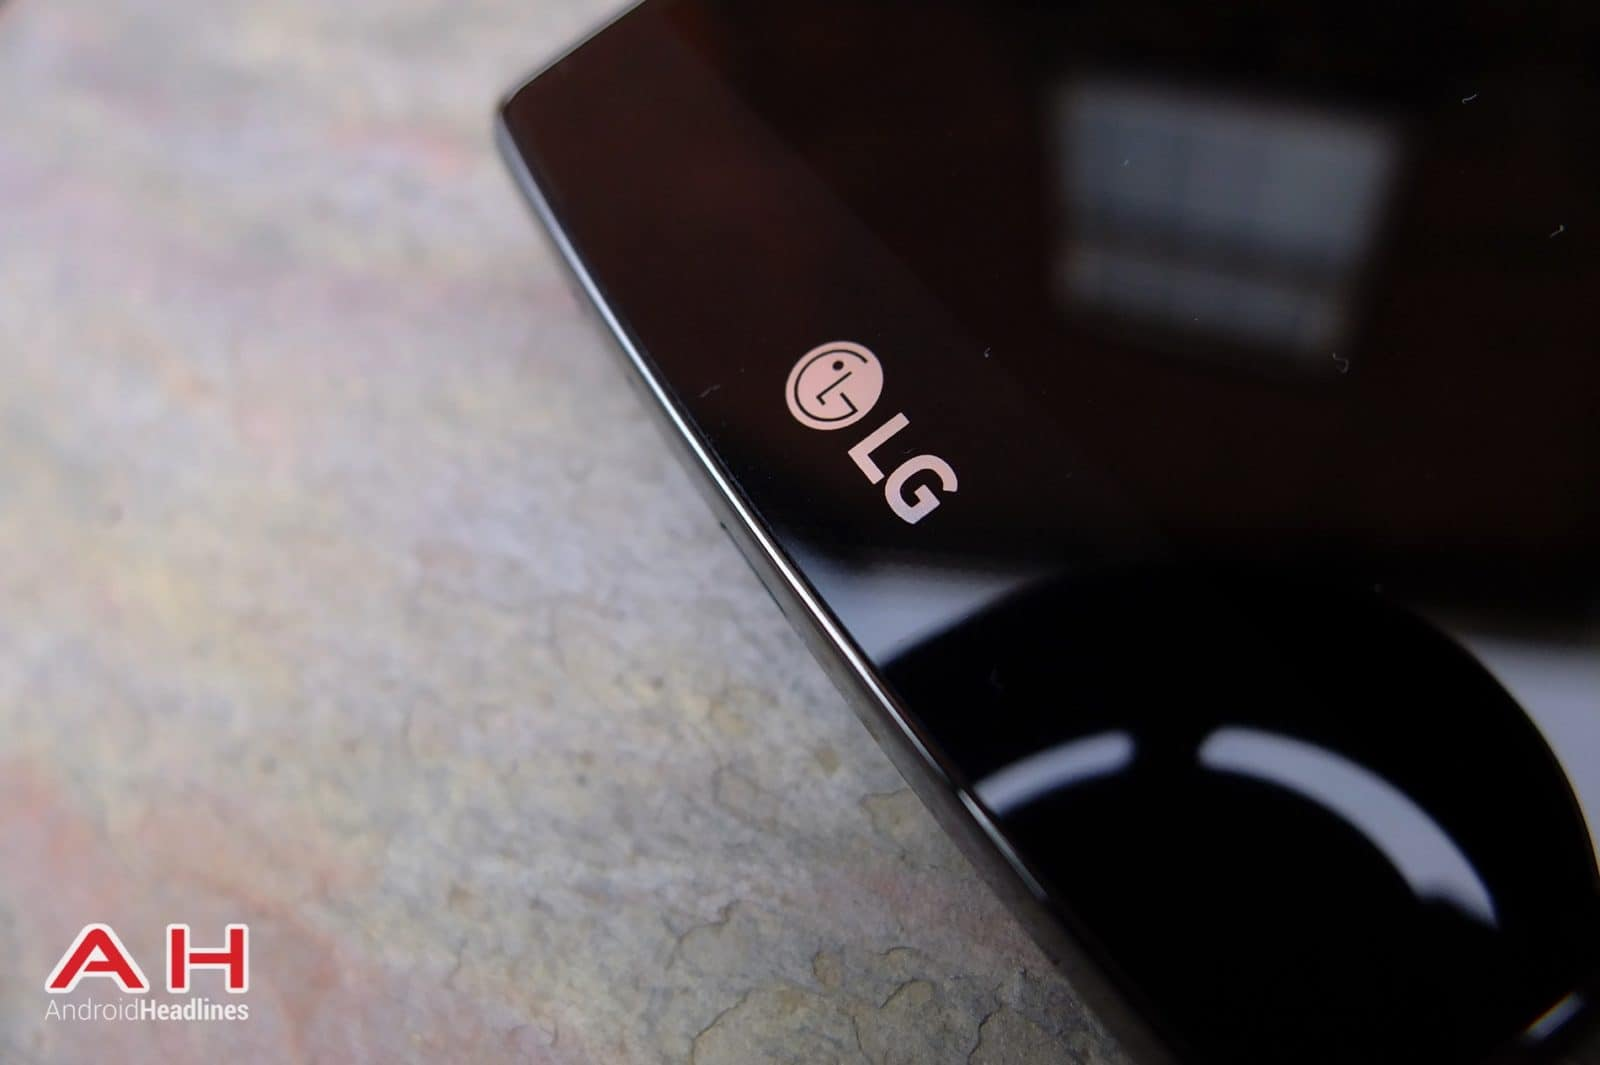 LG G4 BlackLeather TD AH 16